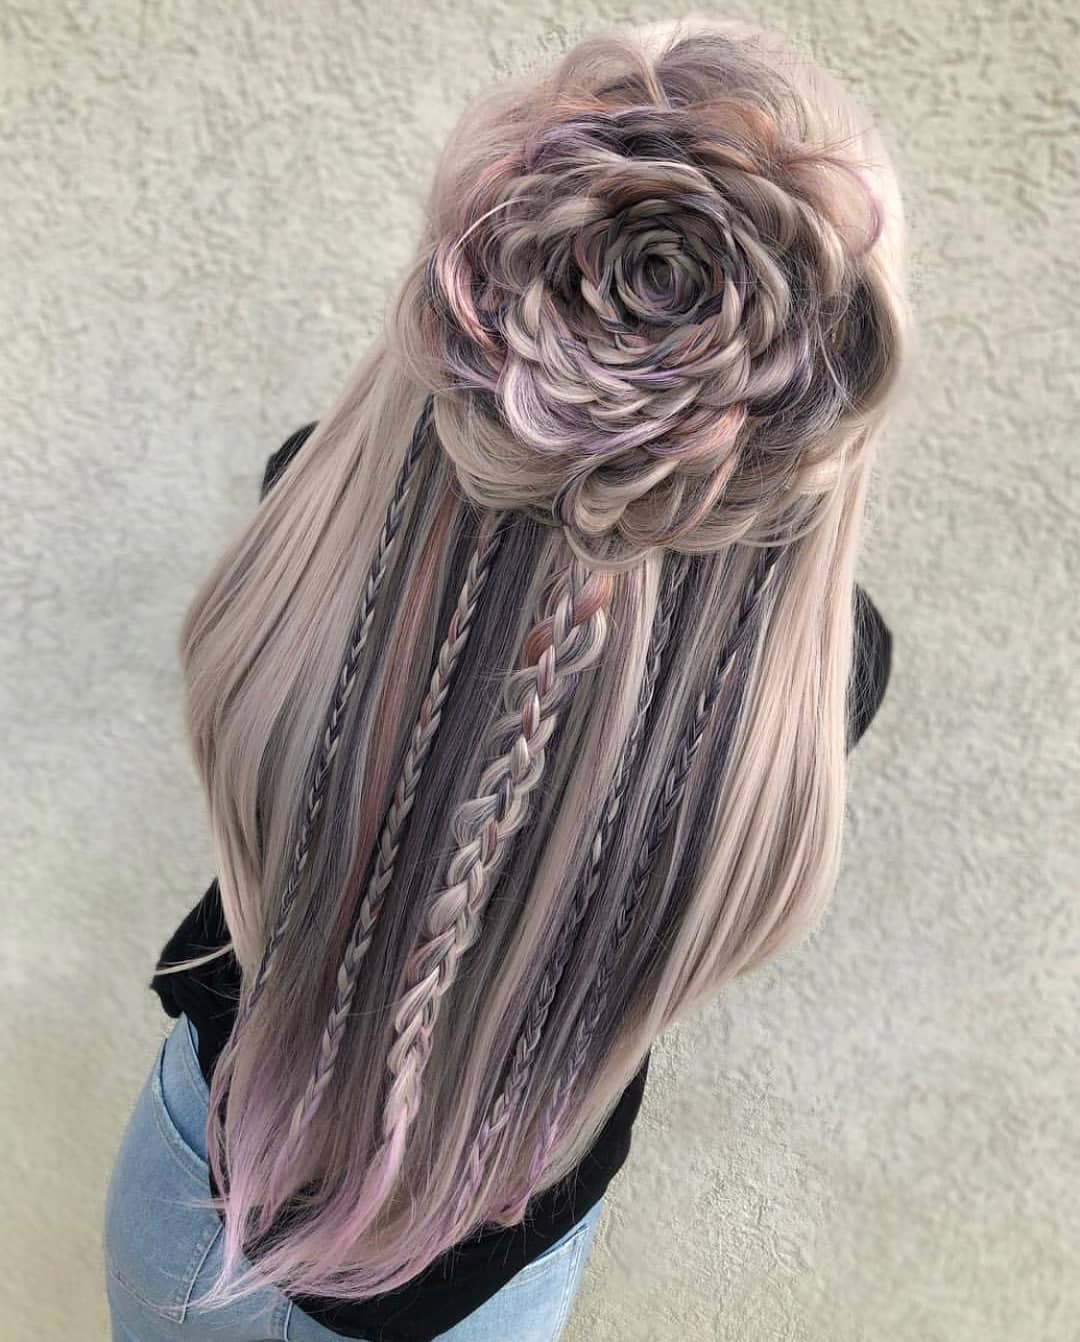 10 Amazing Braided Hairstyles For Long Hair